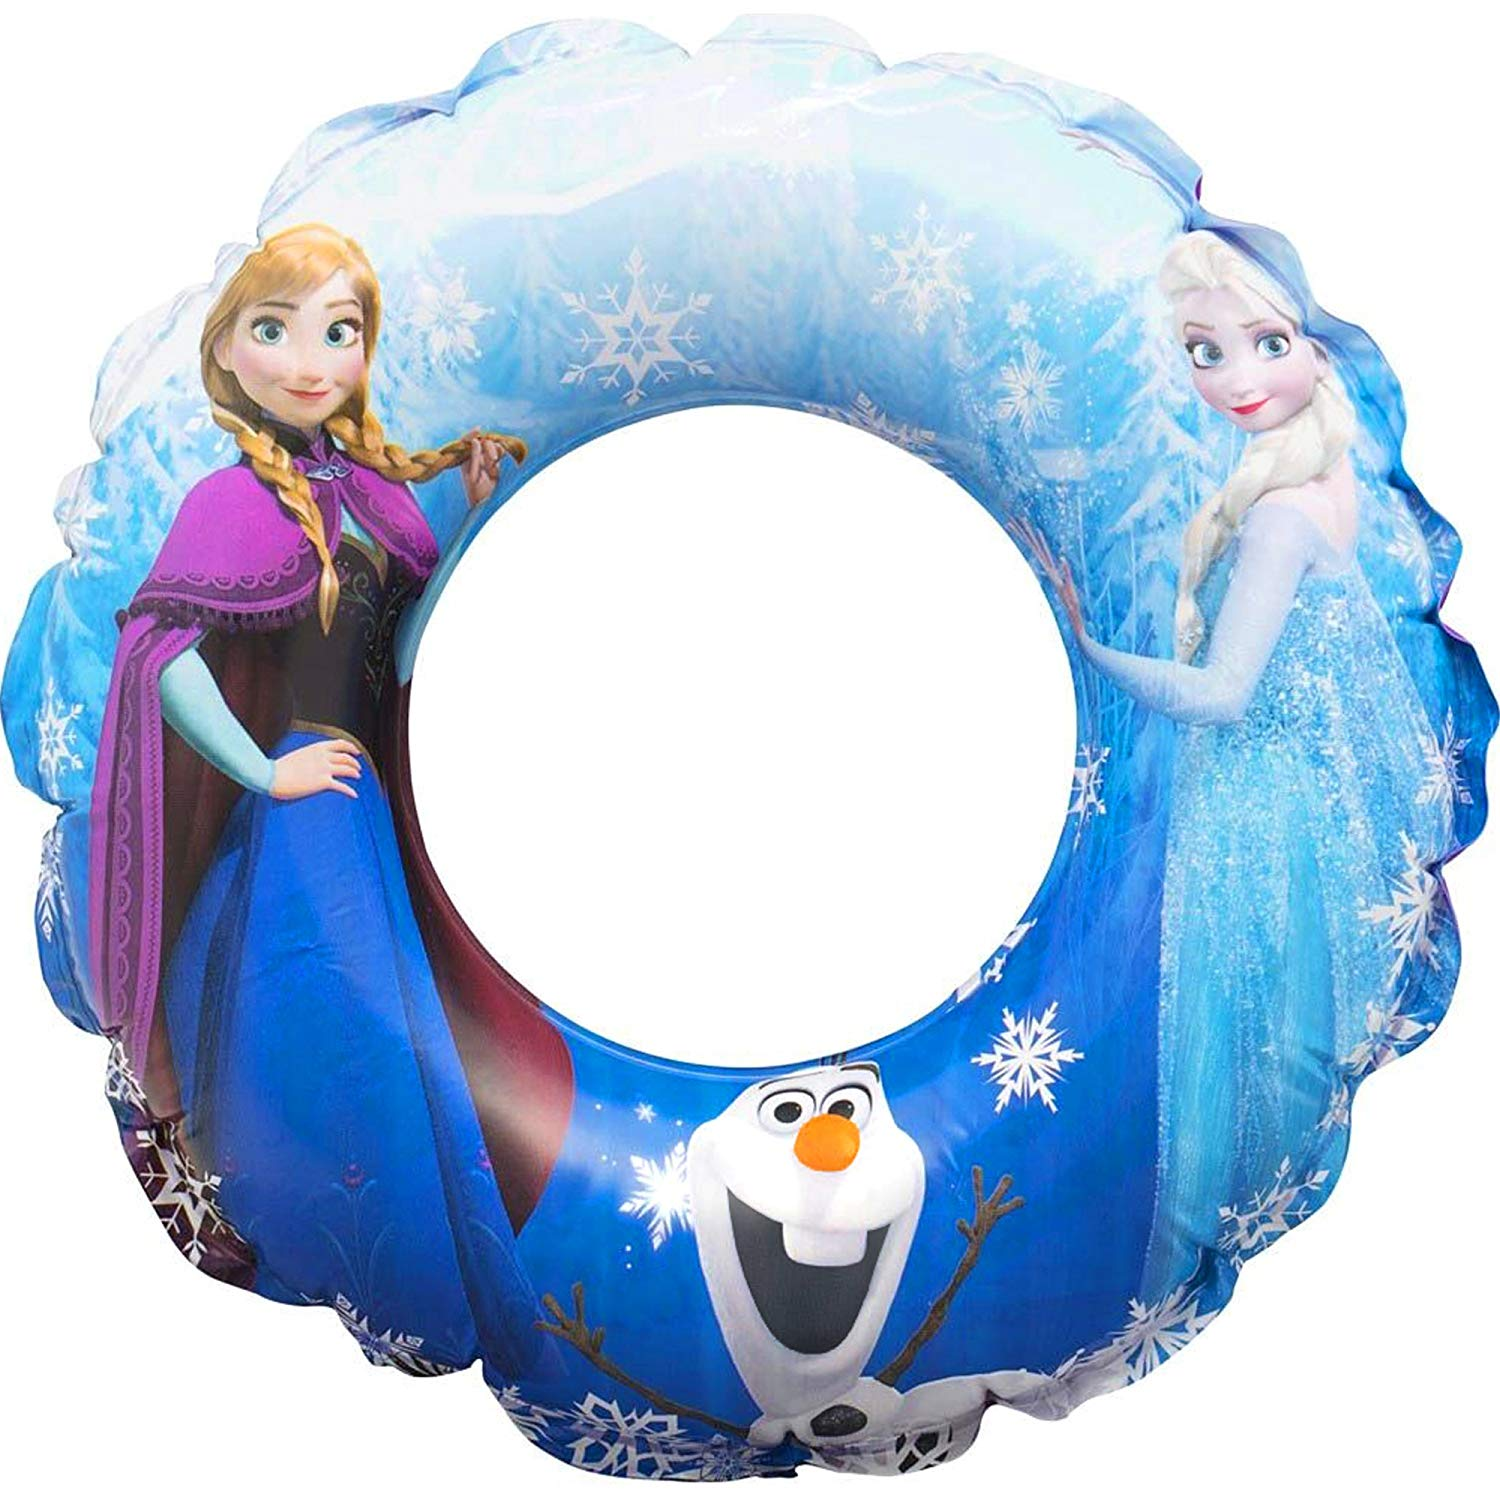 SAMBRO Disney Frozen Rubber Swim Ring Kids Swimming Beach Toy Inflatable